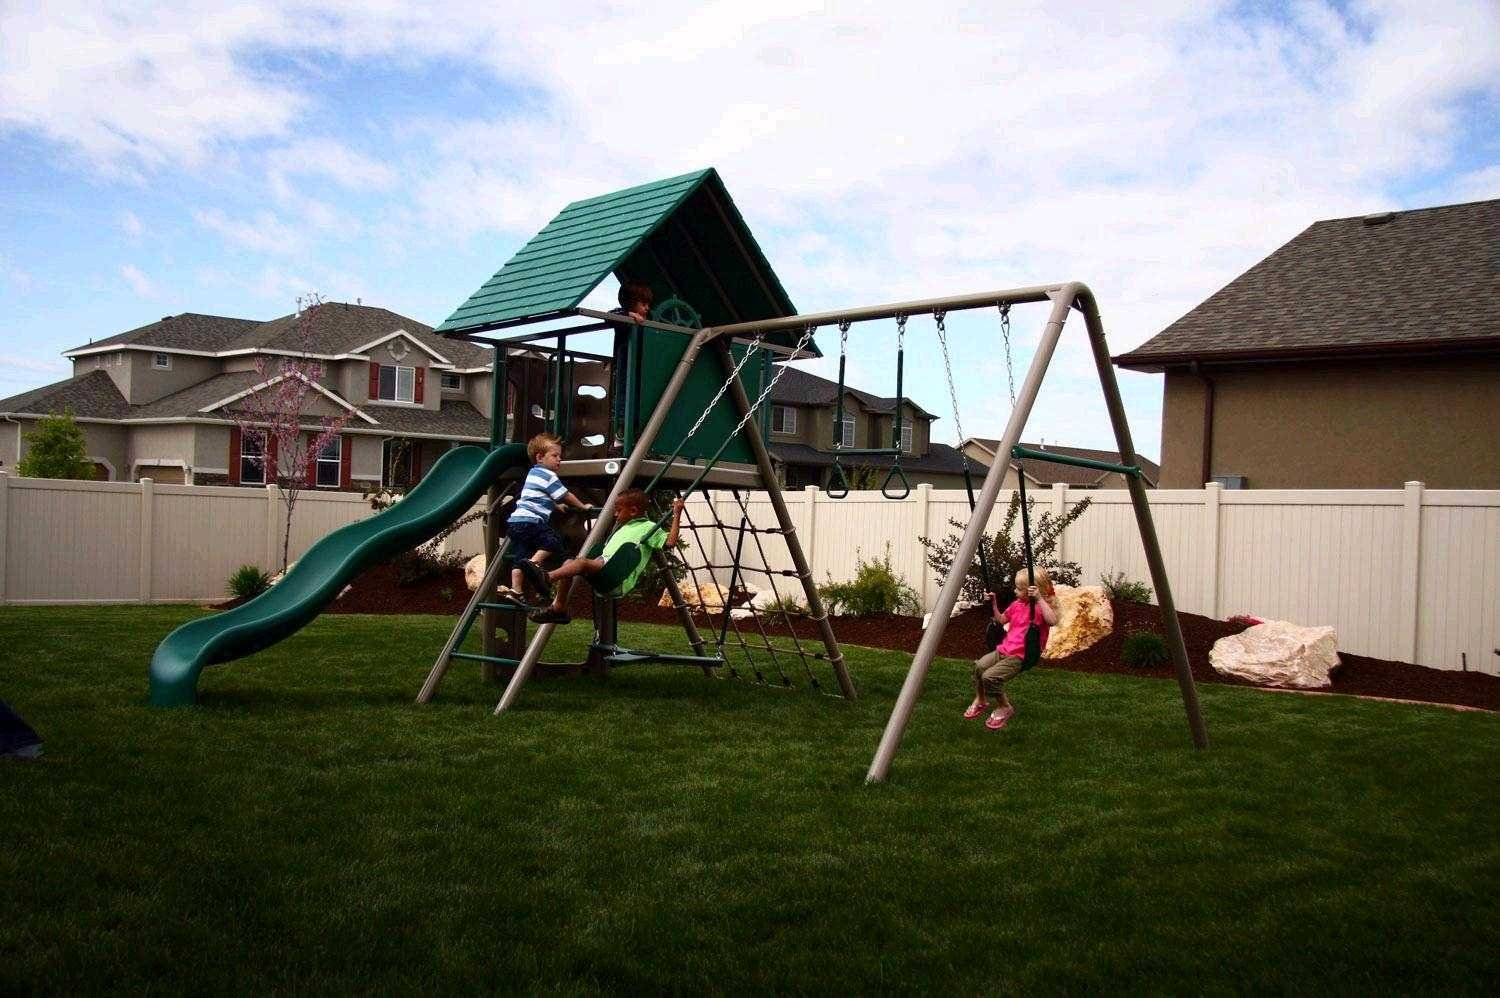 grass set ideas interesting backyard wooden for clearance spread your lowes sets outdoor plus with lifetime exterior landscape swing